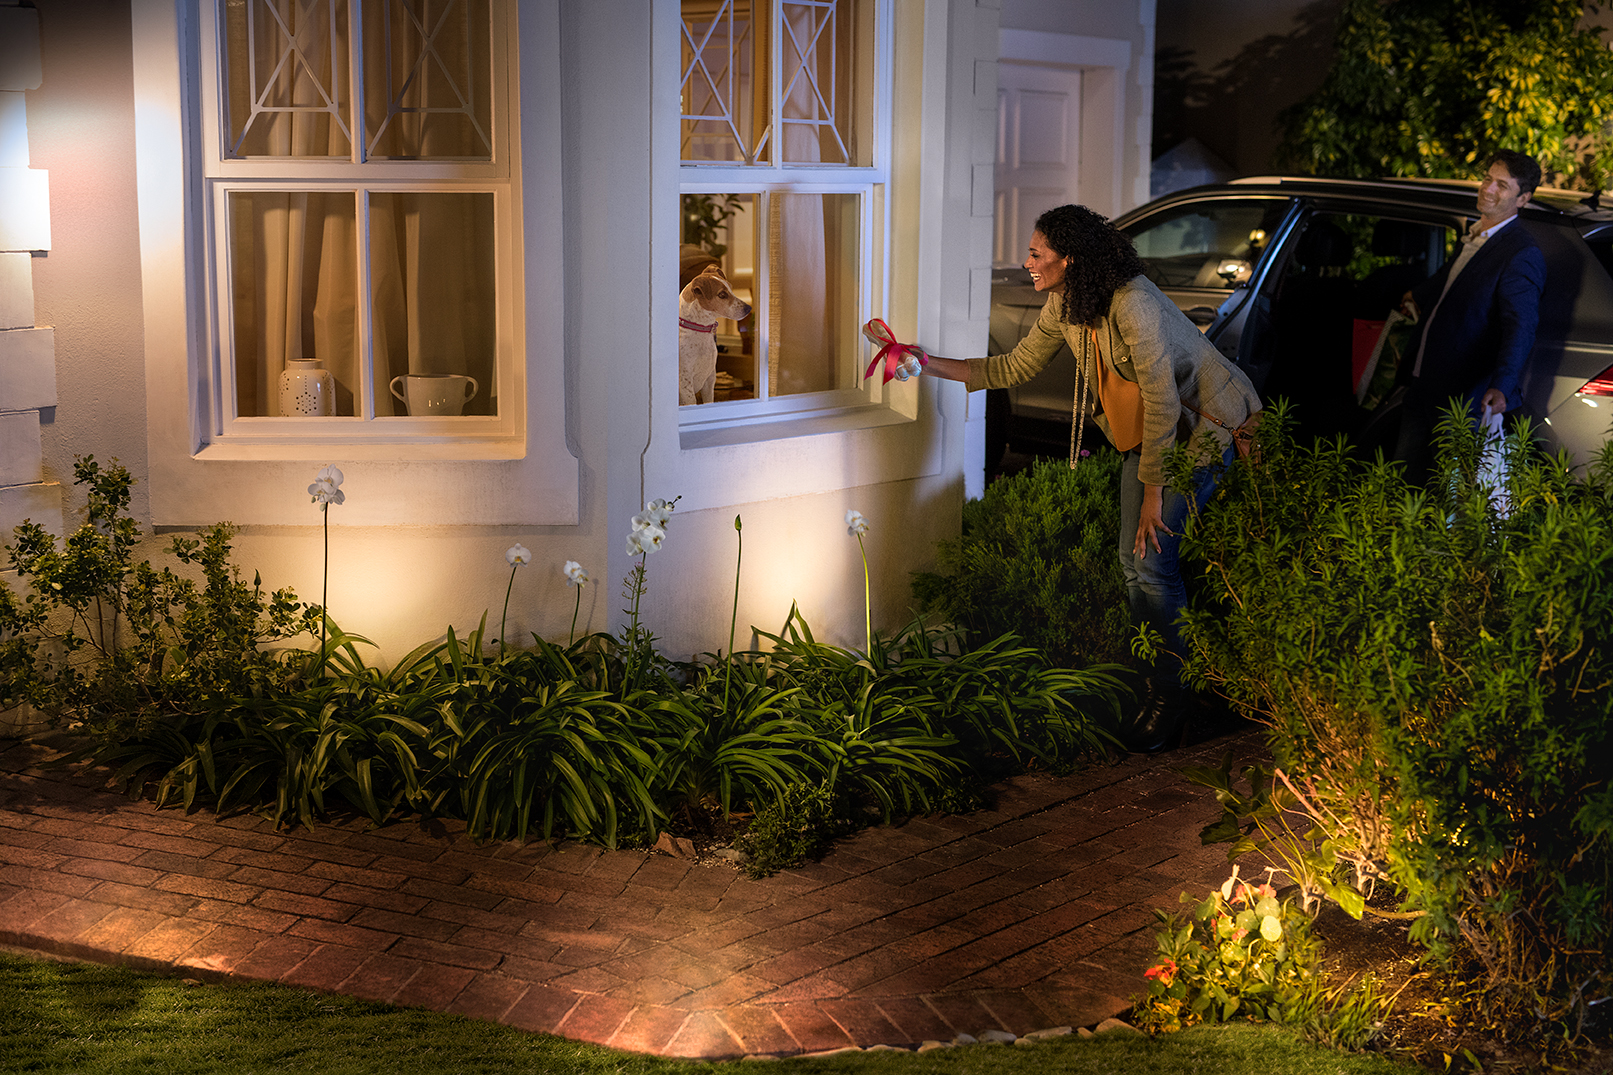 New captivating functionality and enhancements to Philips Hue